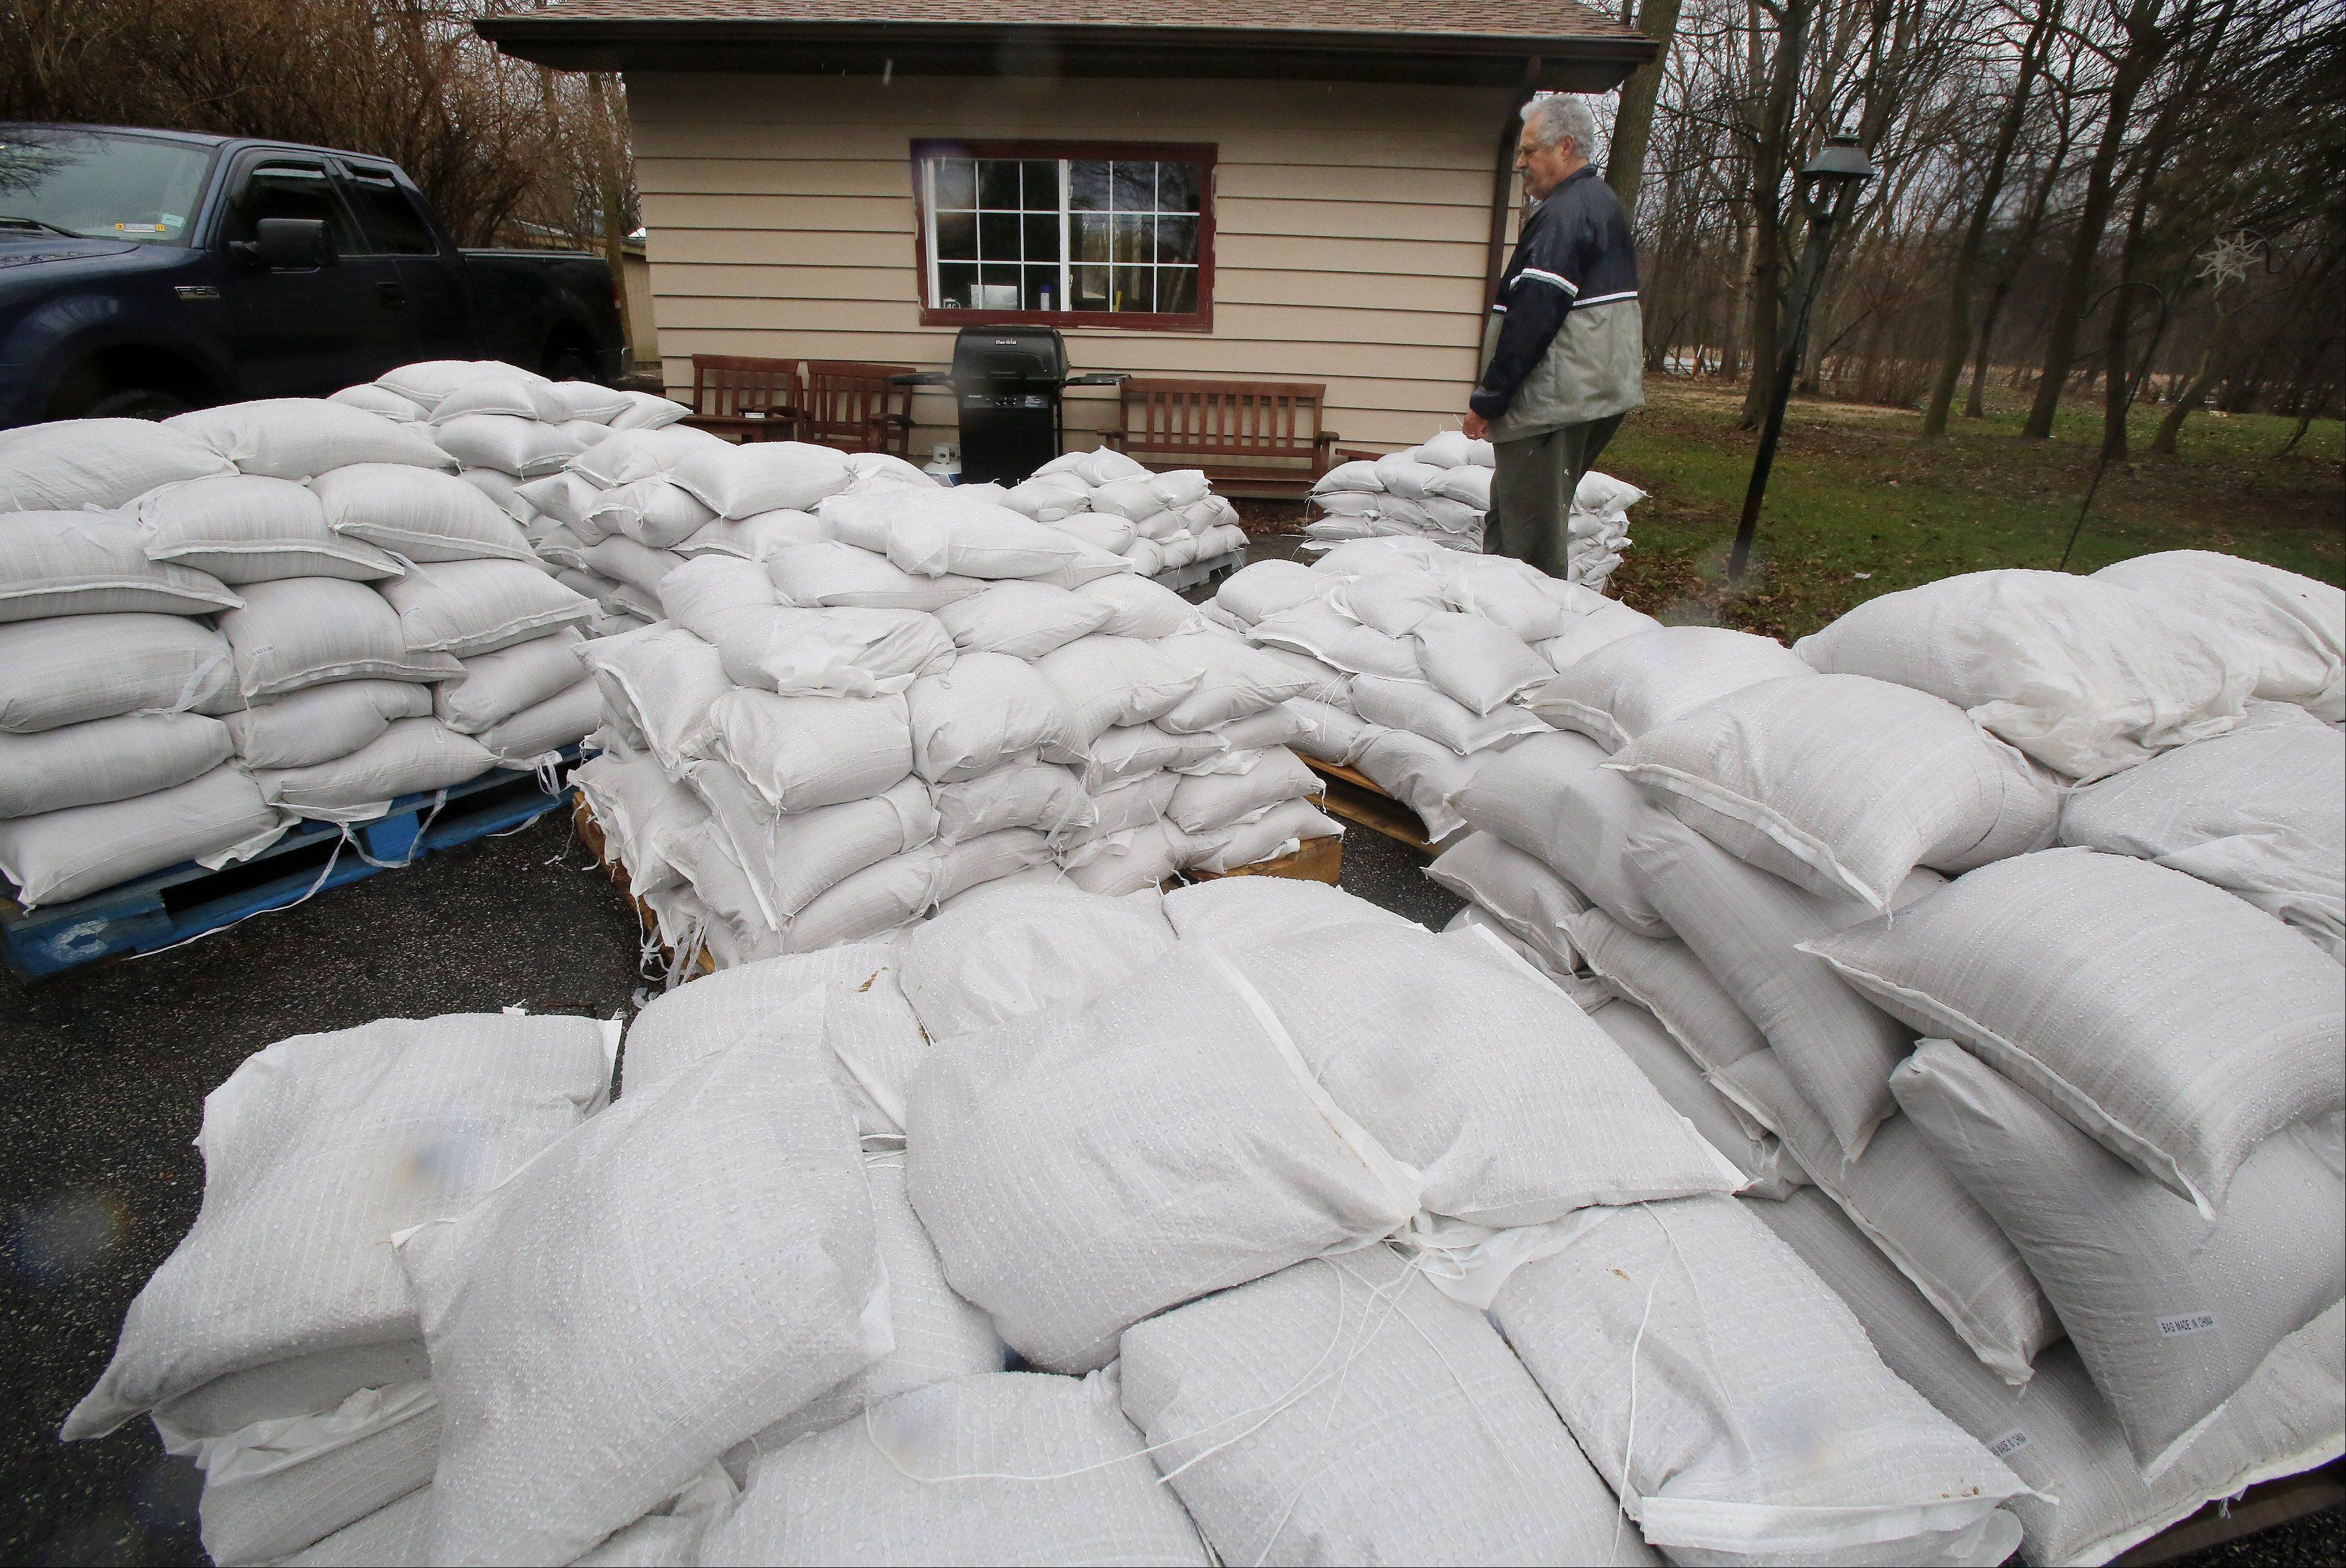 Gurnee resident Carl Marro walks around the pallets of sandbags delivered to his house along the Des Plaines River by Gurnee Public Works crews Wednesday. Volunteers filled sandbags in Gurnee as heavy rains are expected to continue Thursday.